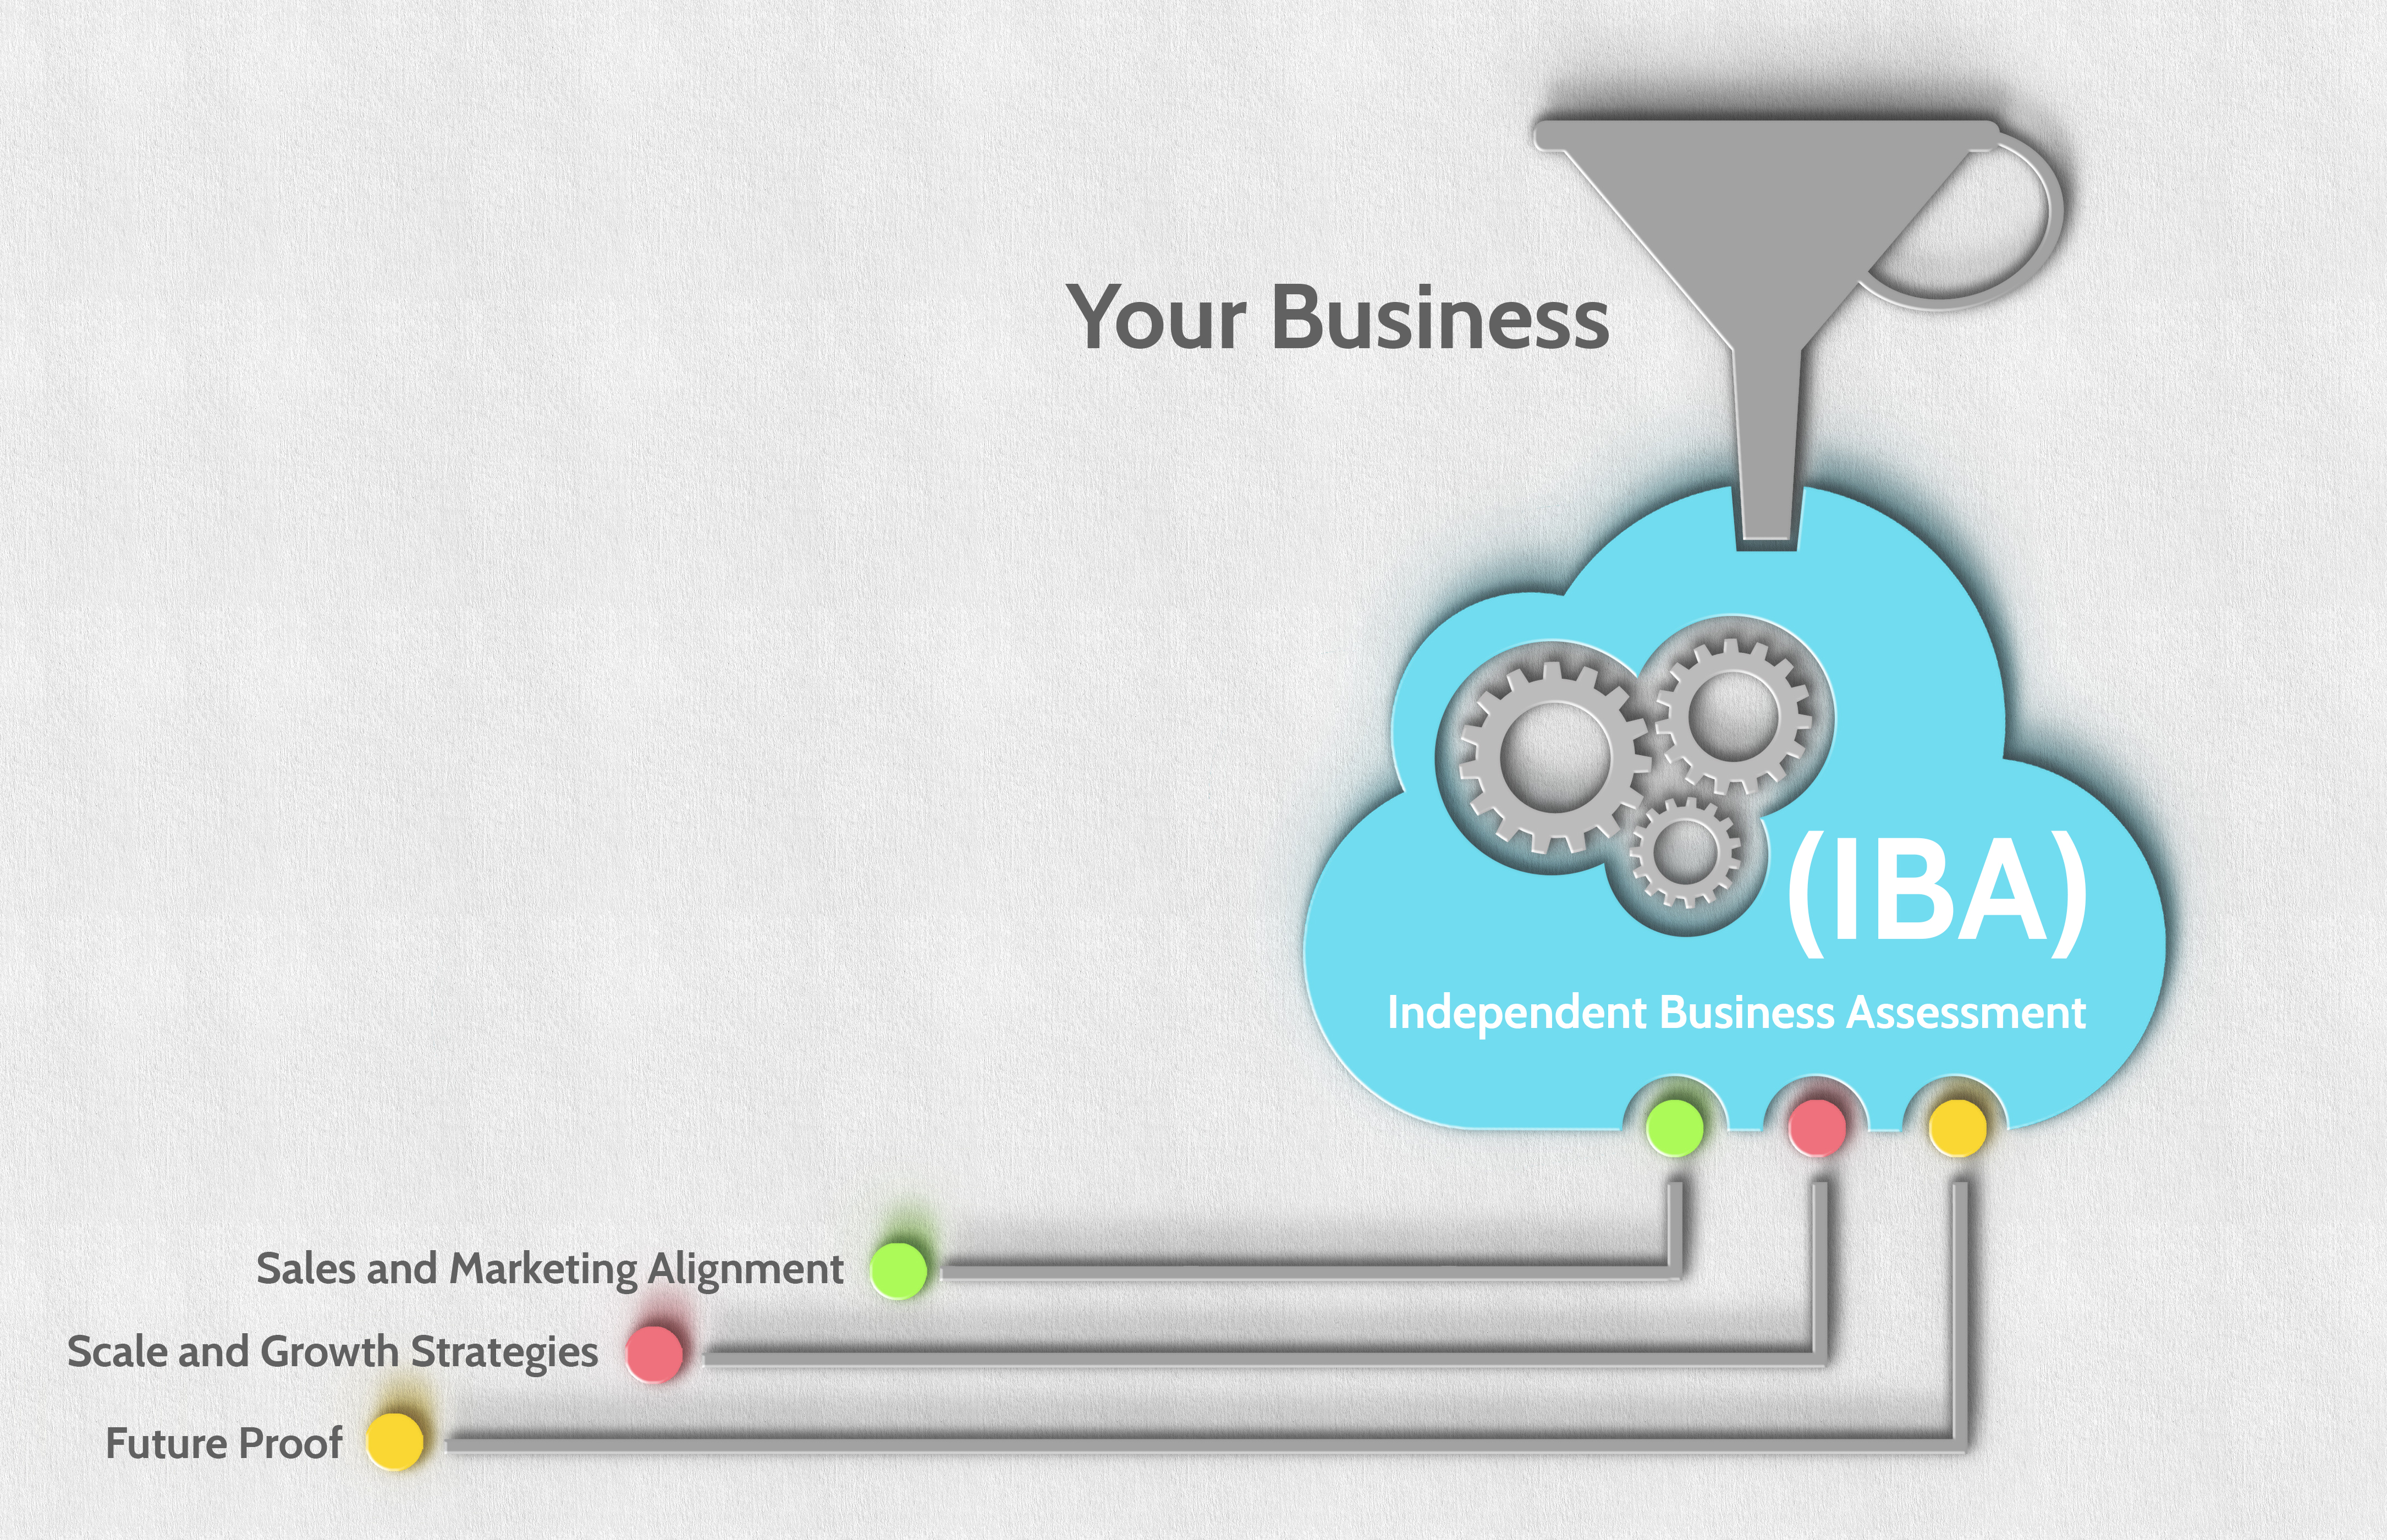 Independent Business Assessment